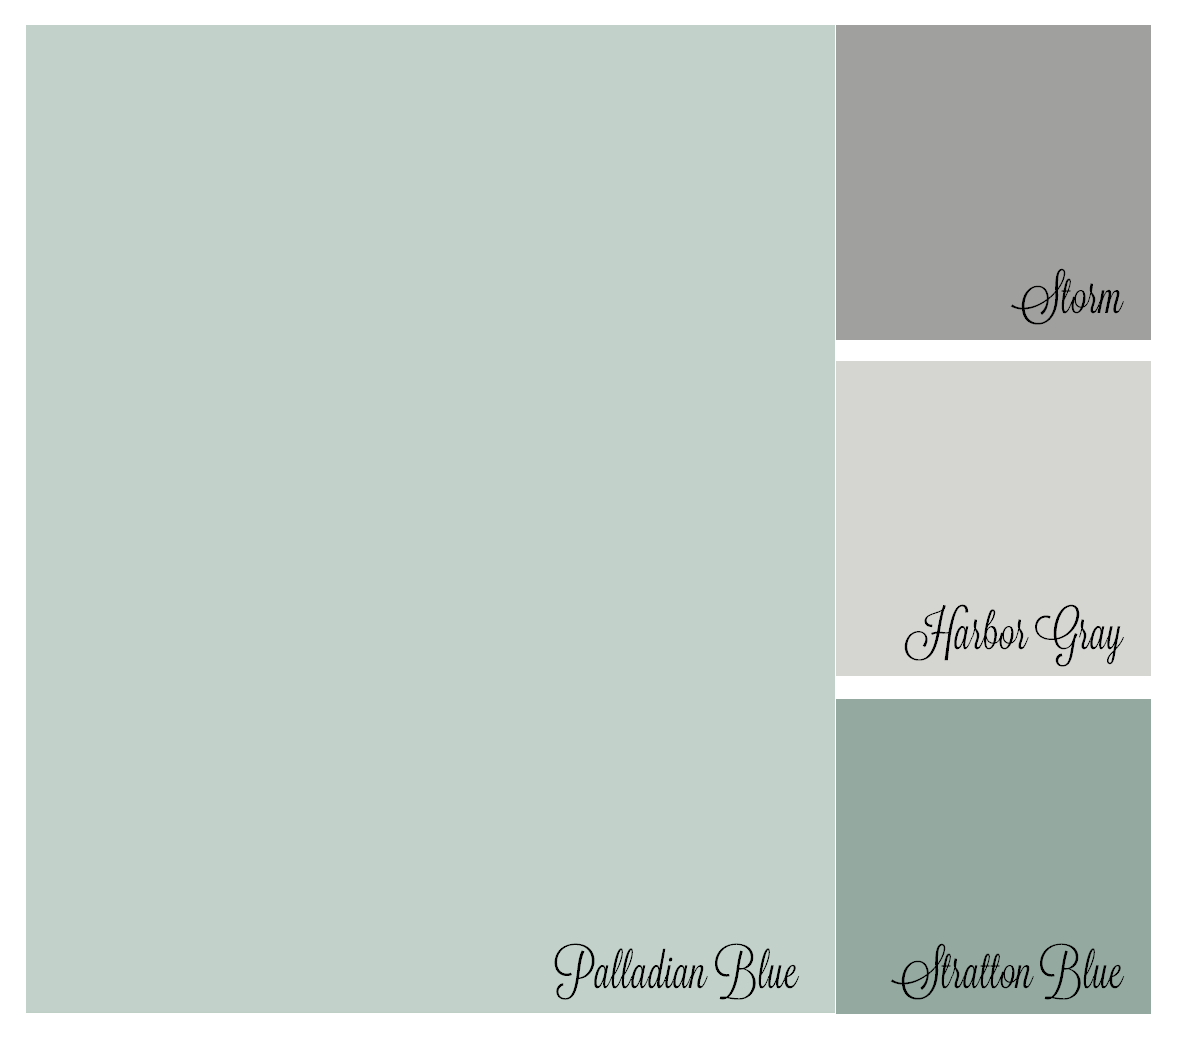 Color Palette Benjamin Moore Palladian Blue Storm Harboy Gray Stratton Blue Paint Colors For Home Palladian Blue Interior Paint Colors Schemes